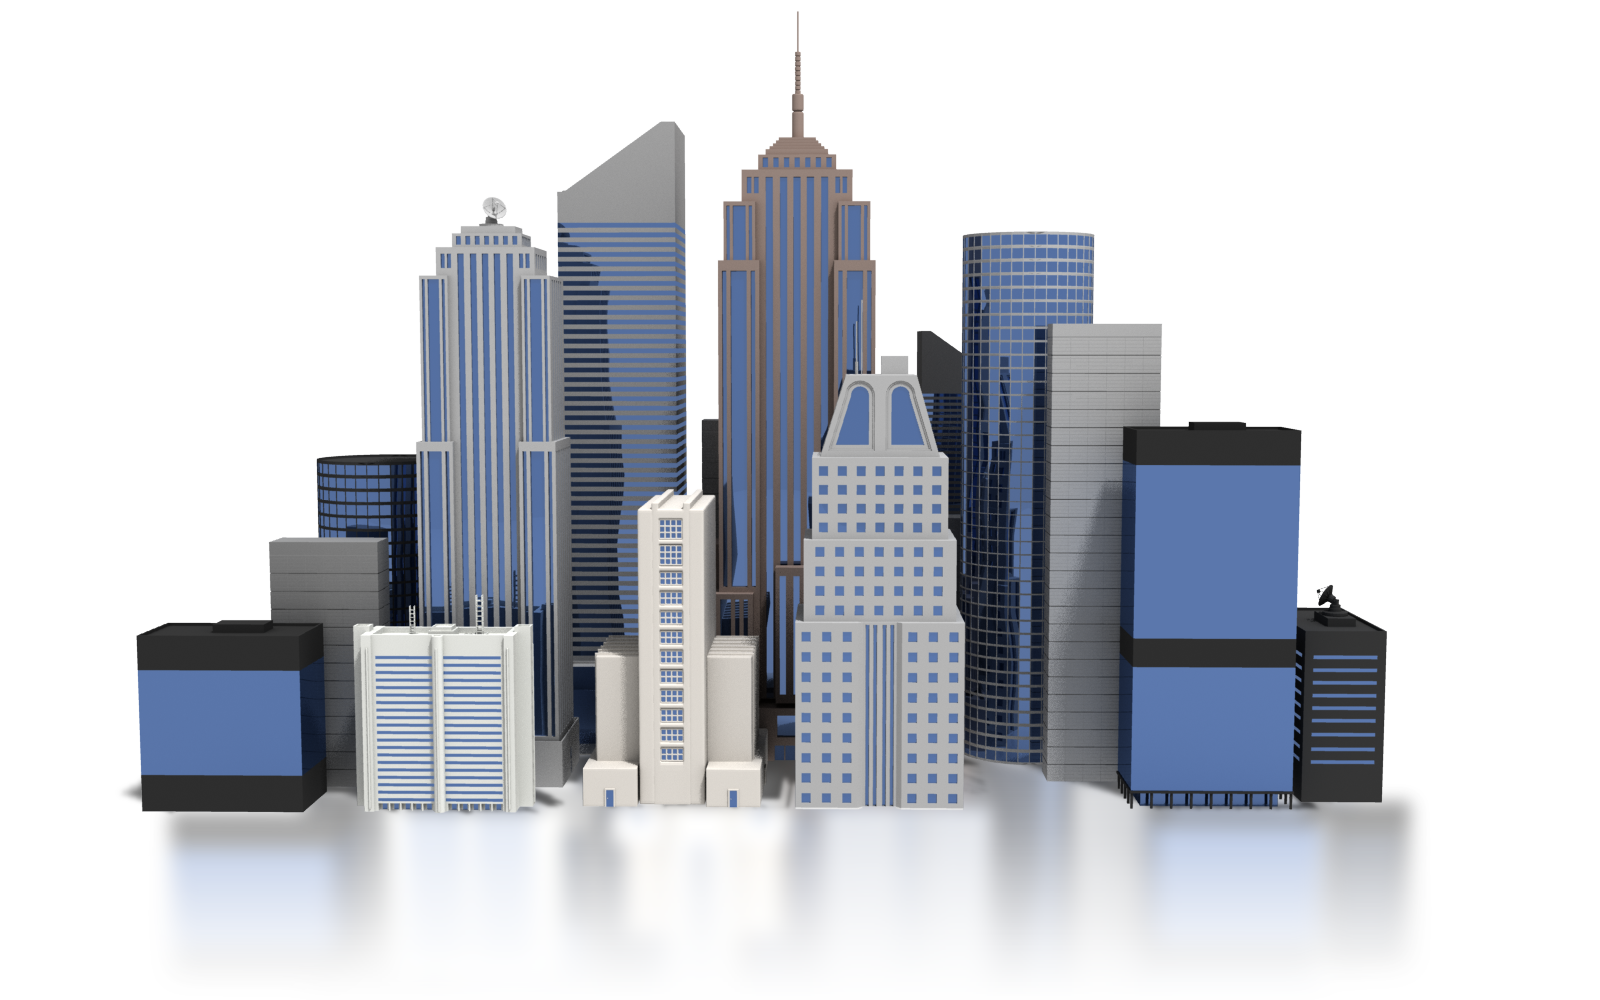 Cityscape clipart commercial building. City png images transparent